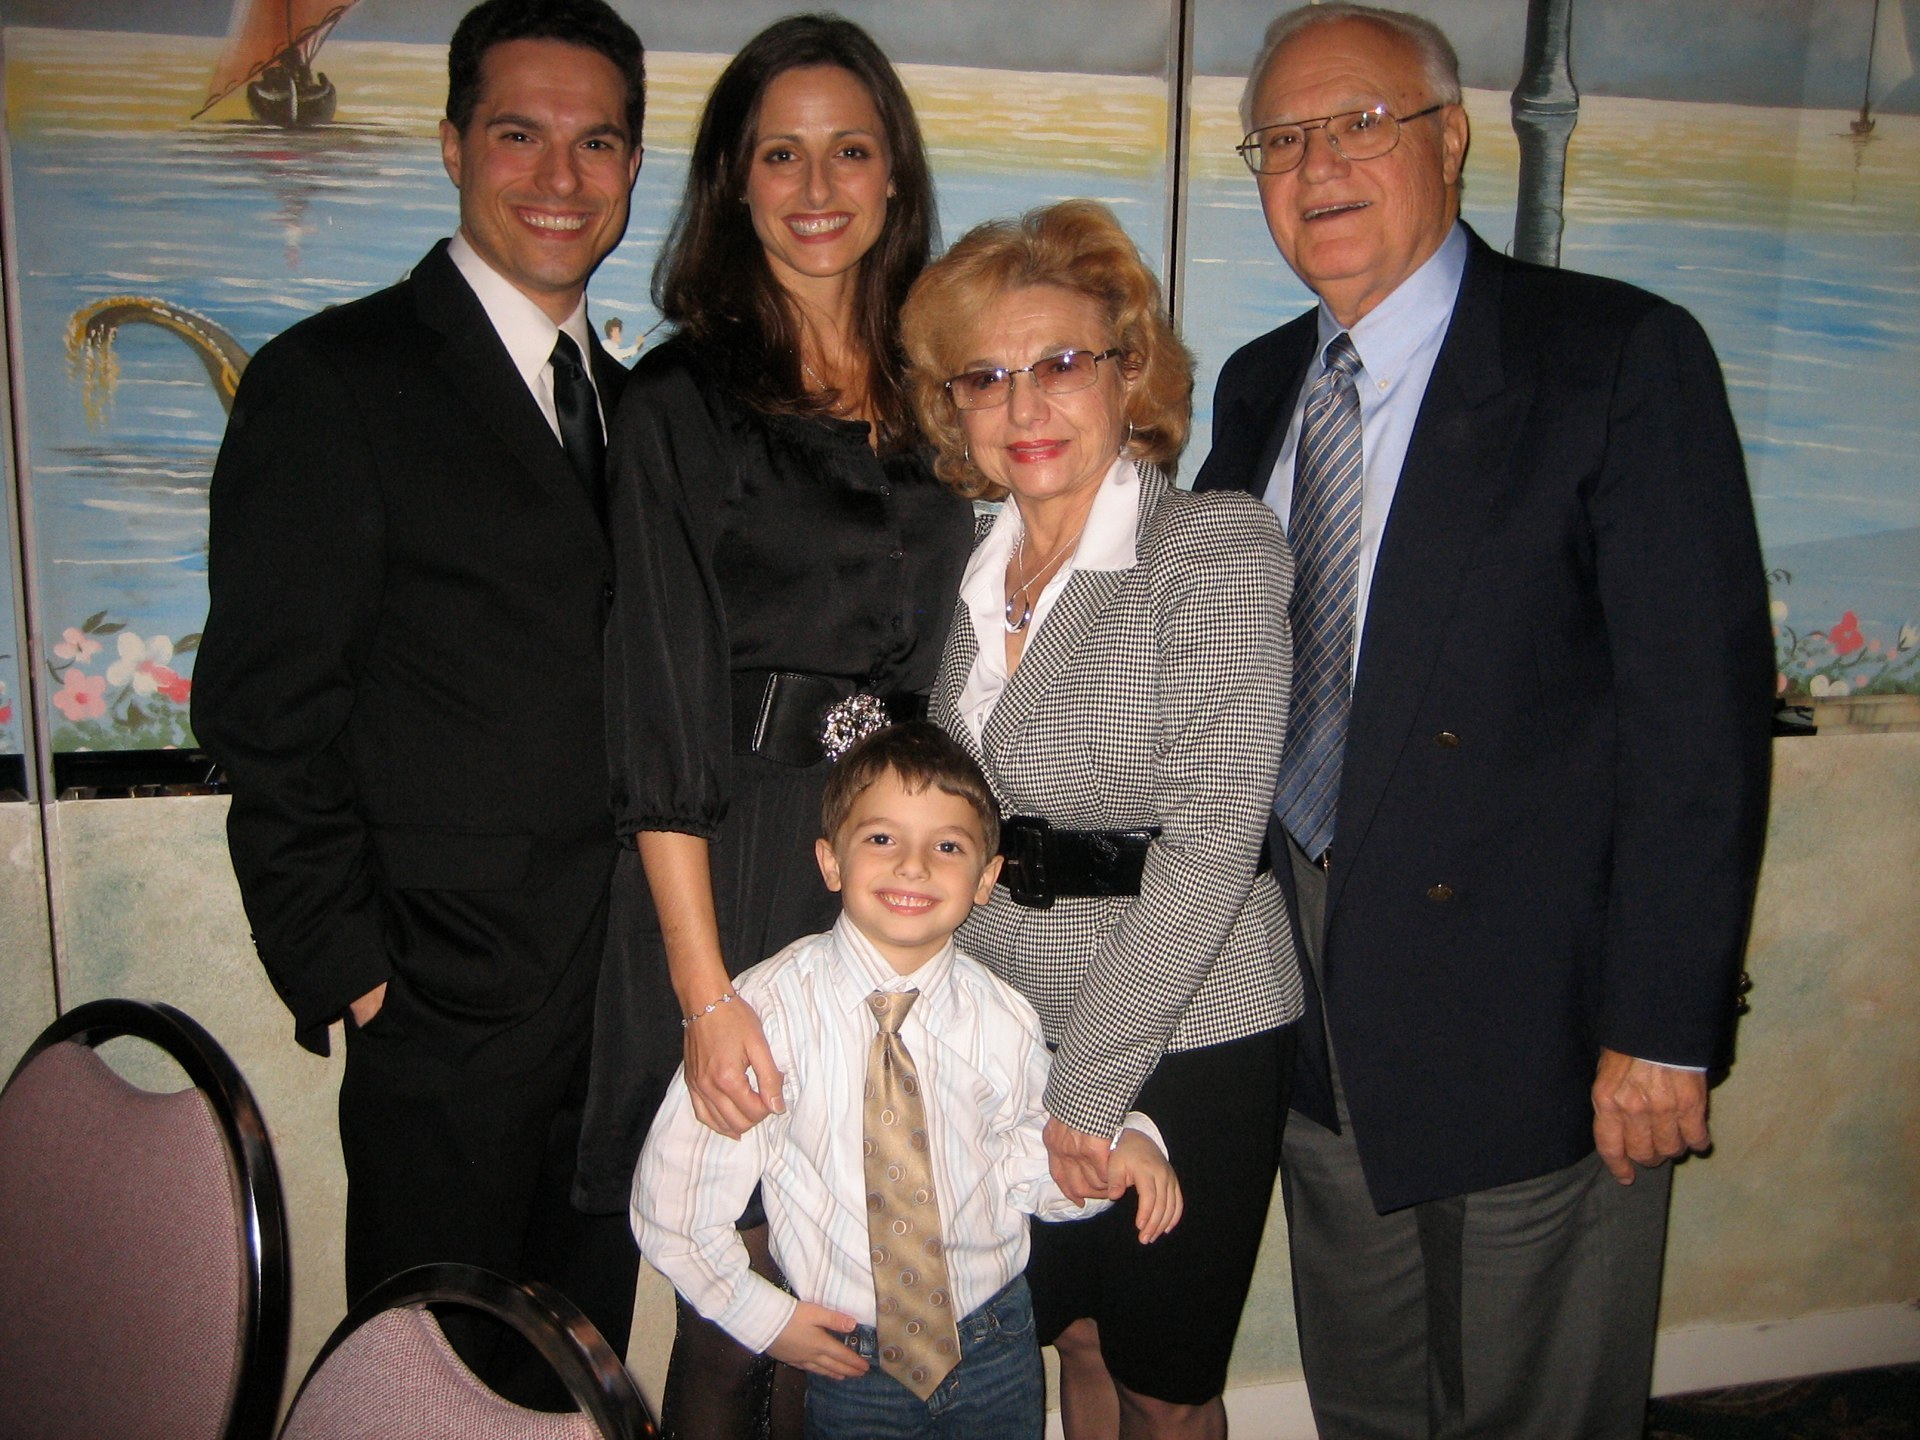 JMC with his family at the David Awards.